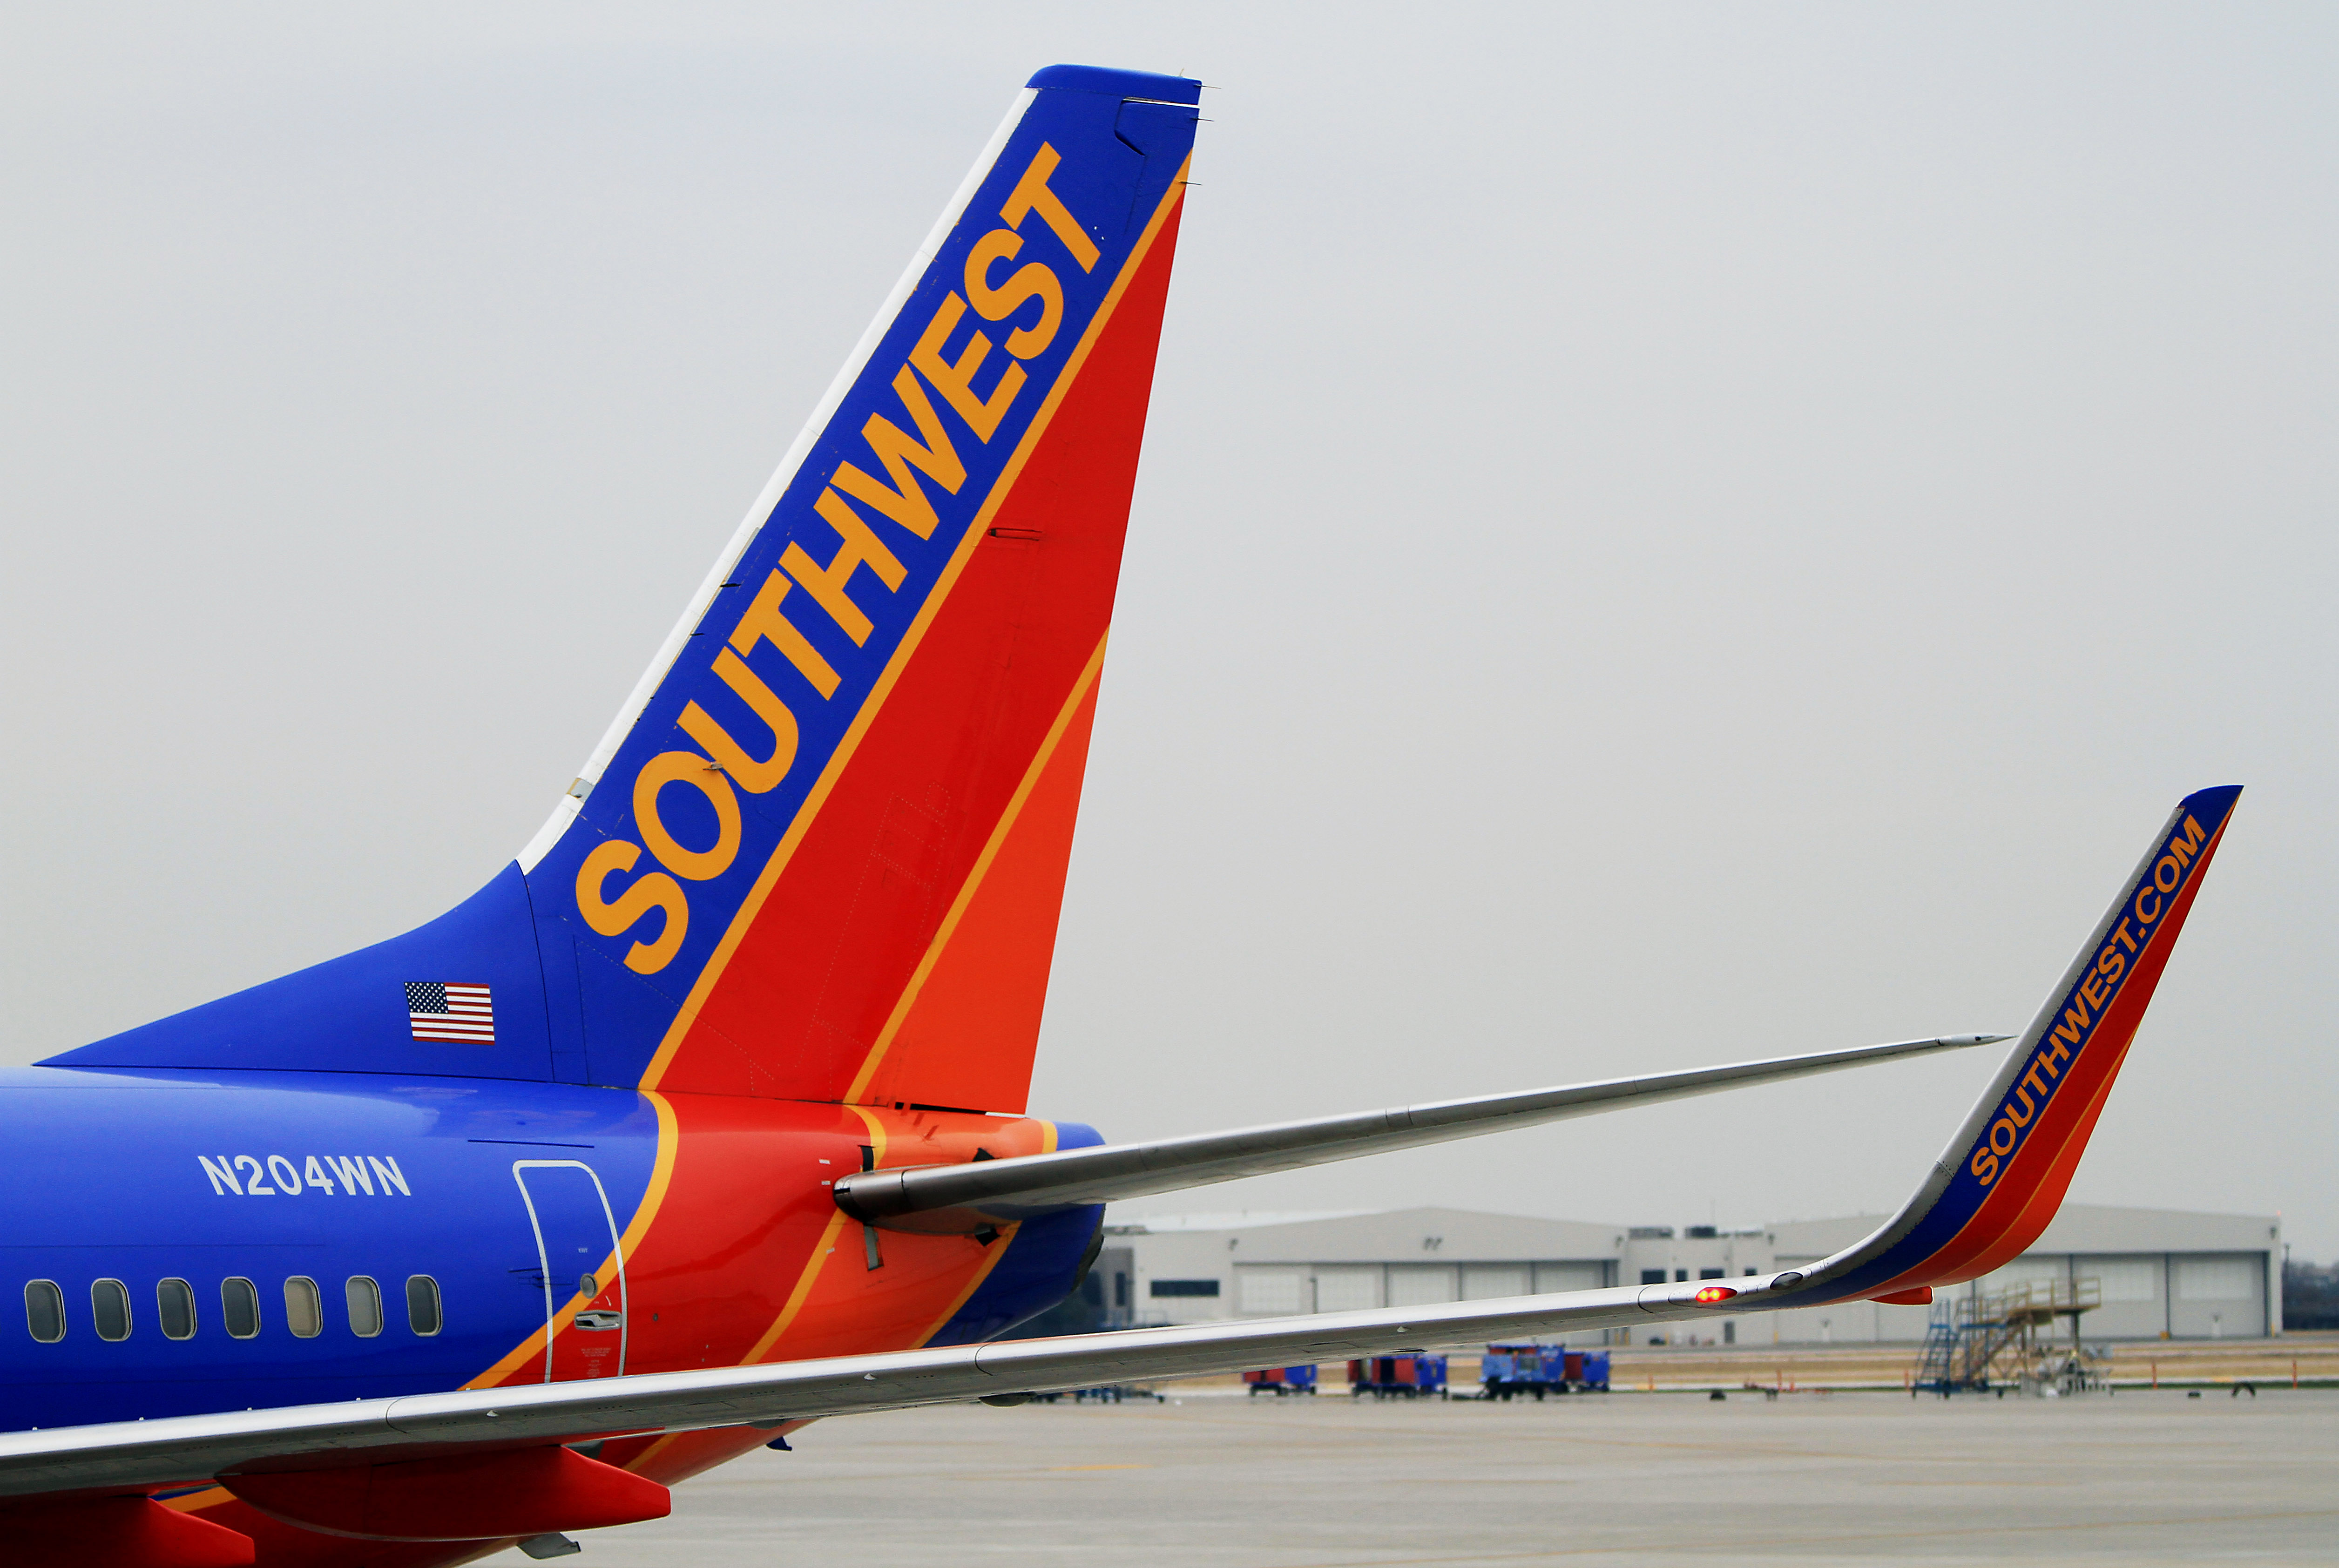 A Southwest Airlines plane sits at a gate at Dallas Love Field Airport on Feb. 3, 2014